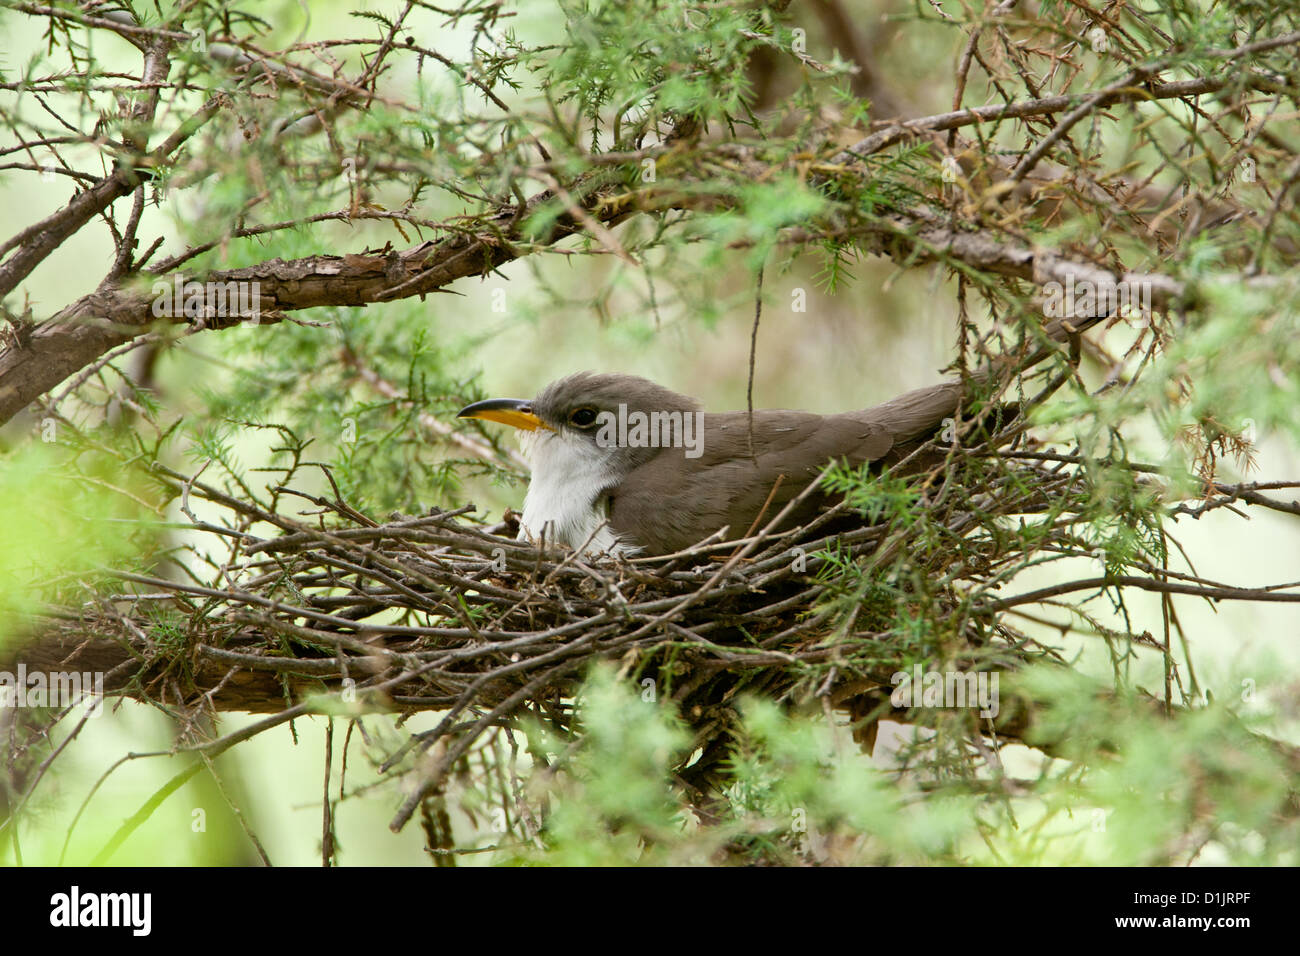 Yellow-billed Cuckoo on nest Stock Photo